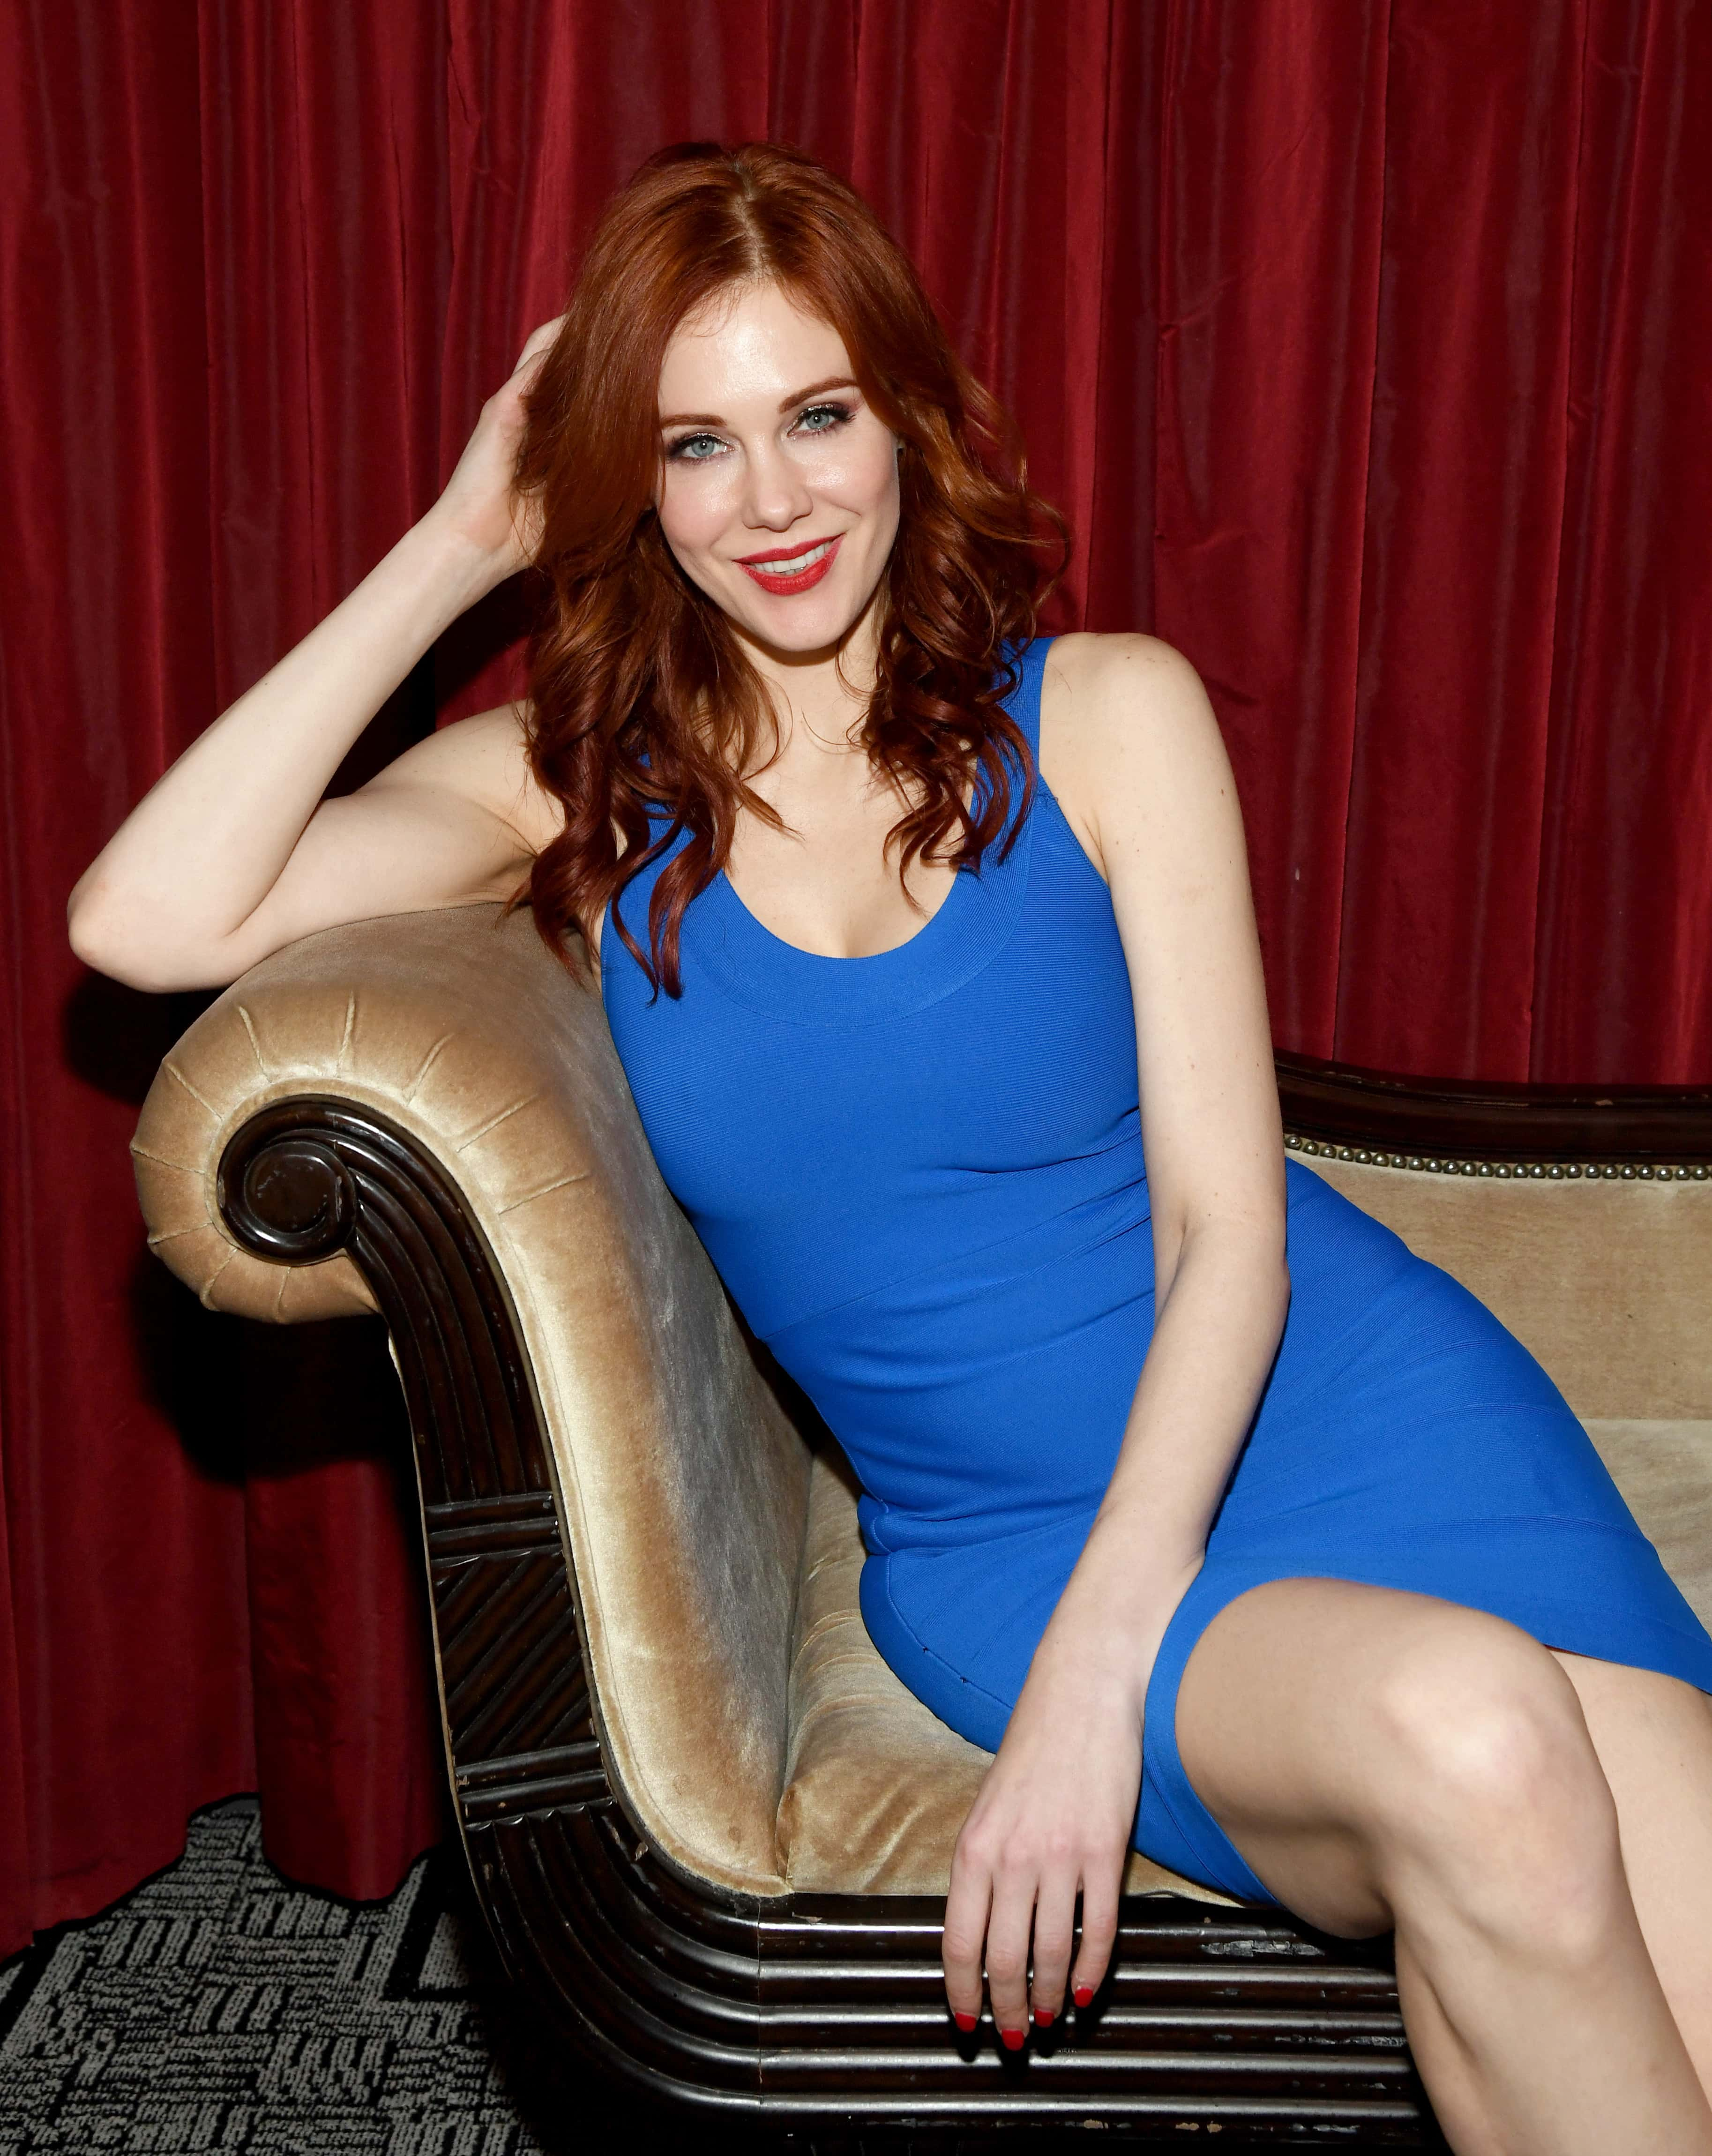 Boy Meets World star Maitland Ward says its time for